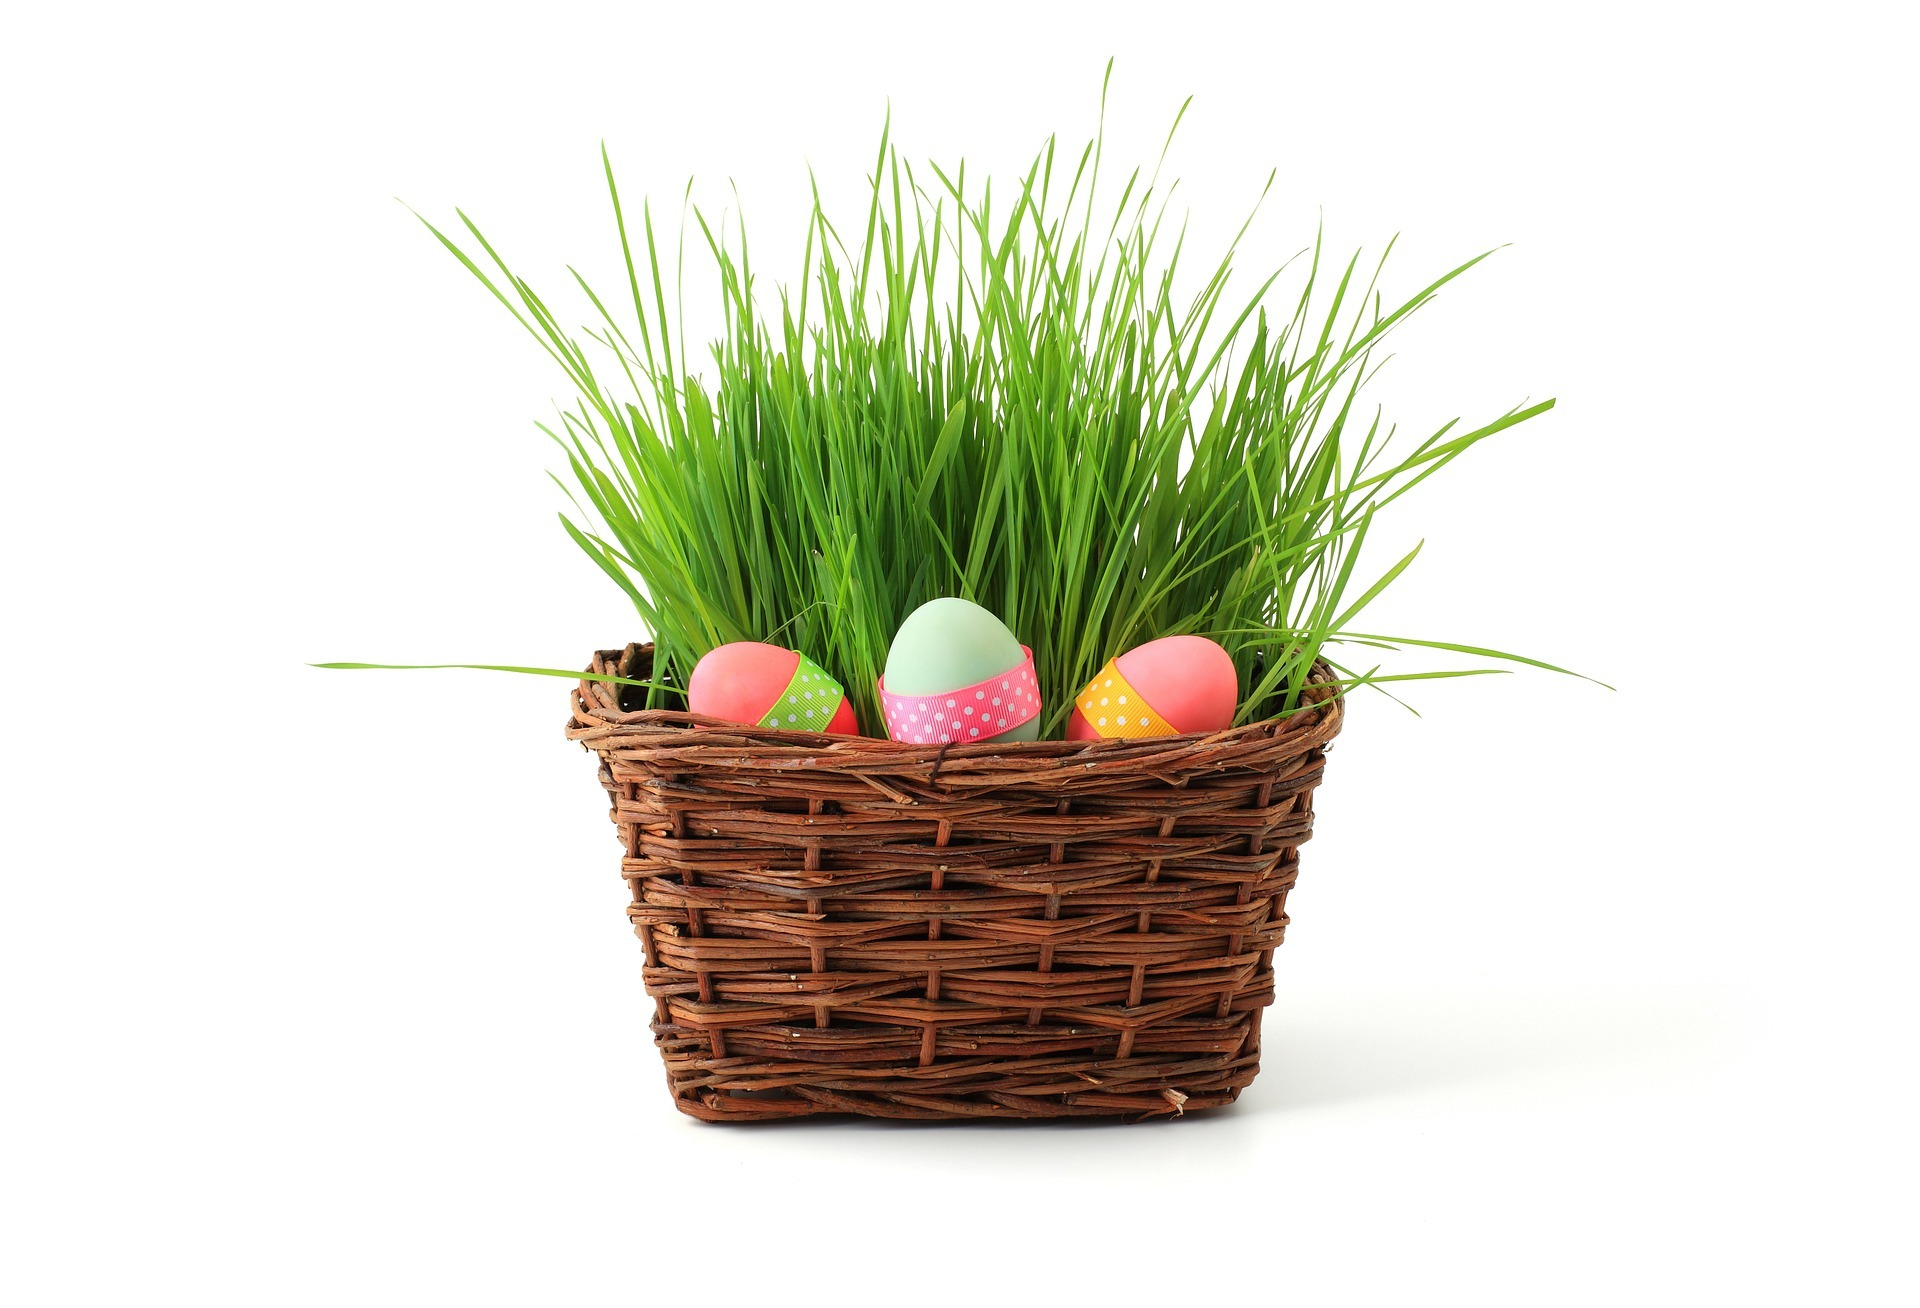 A Few More Easter Basket Filler Ideas